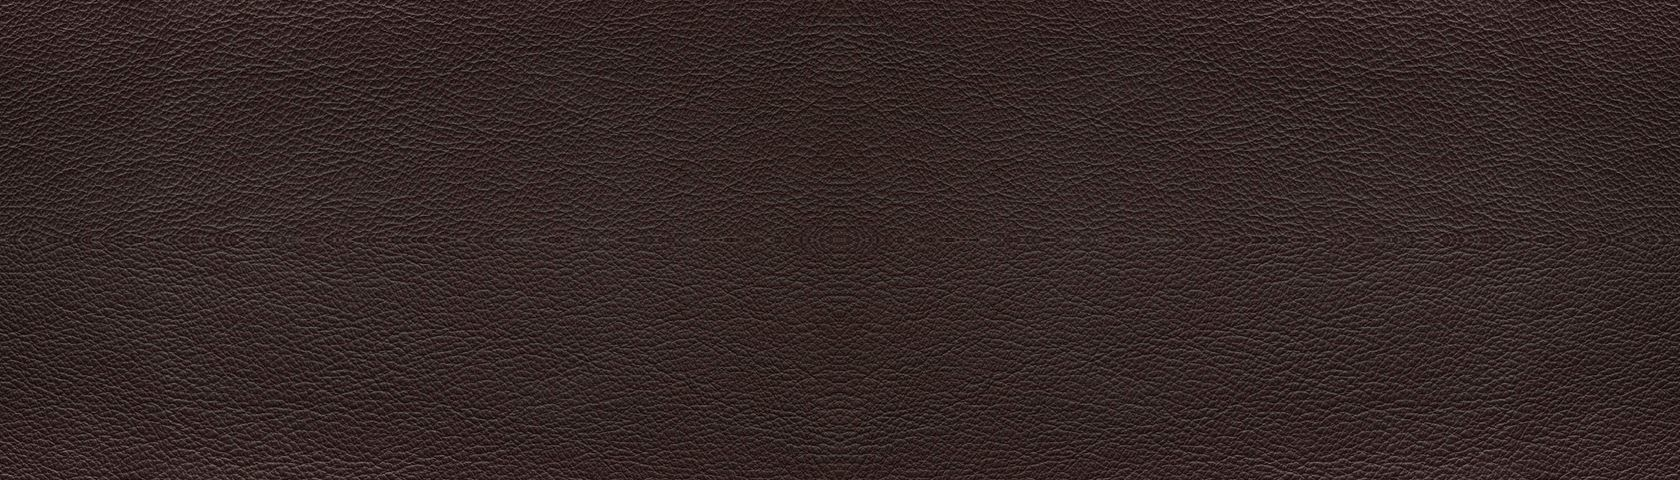 Deep Brown Leather